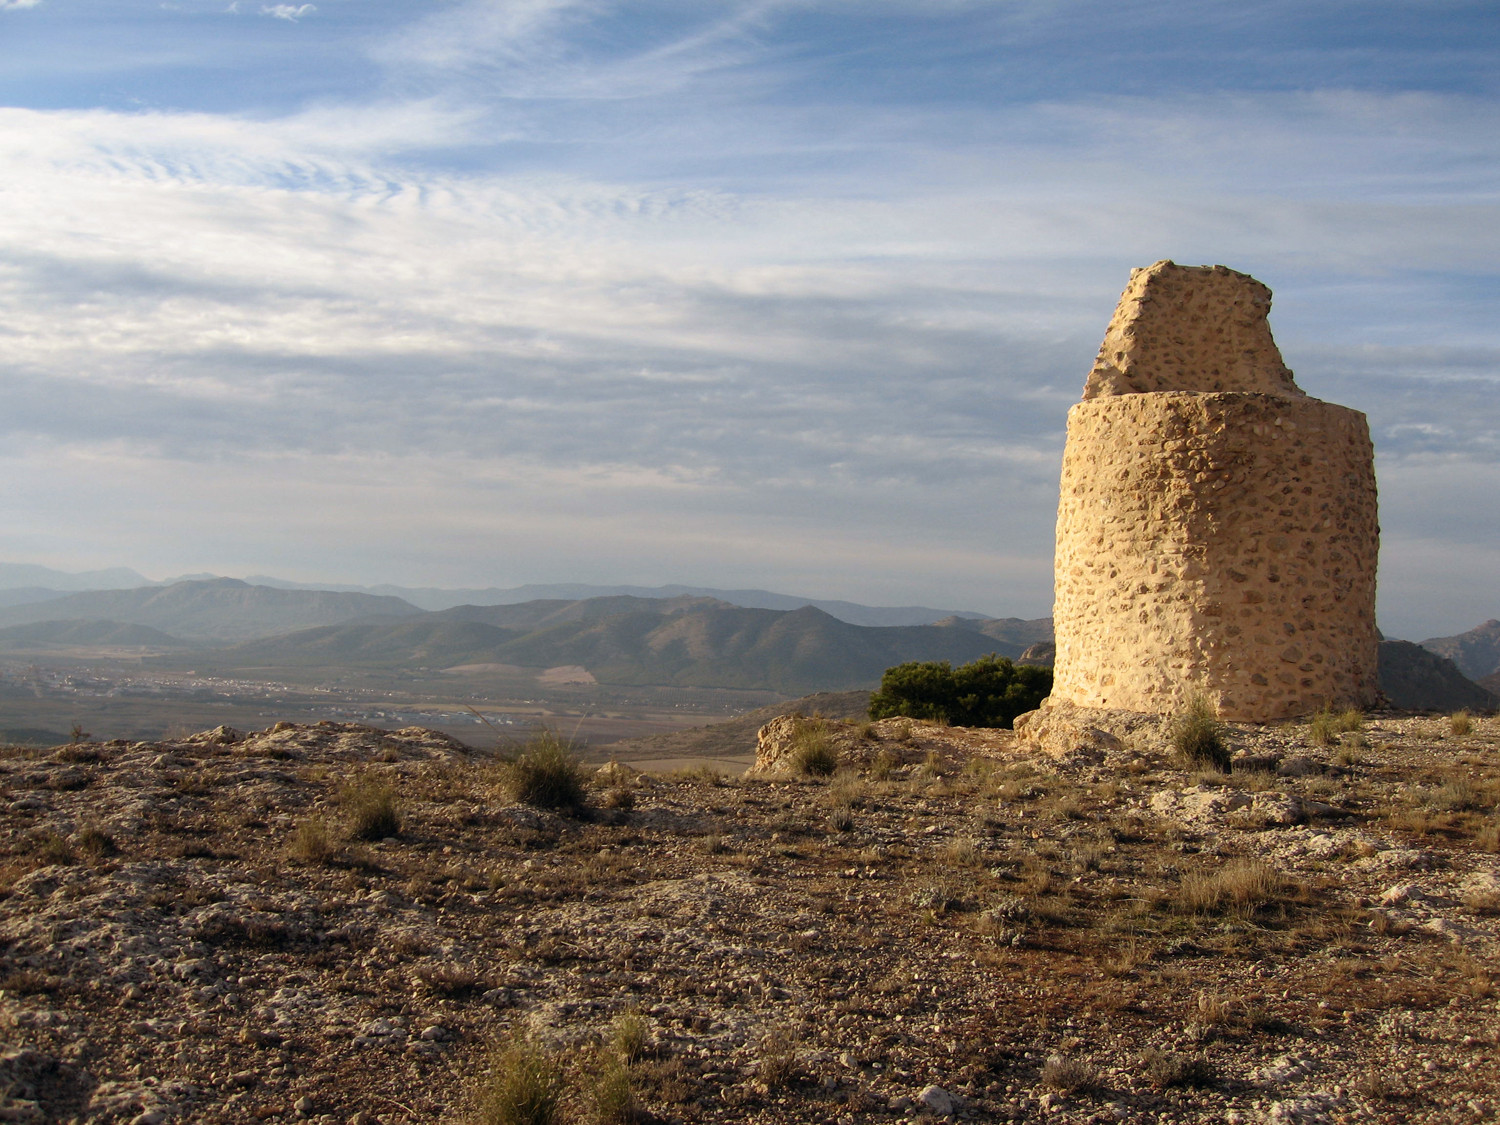 """The Watch Tower"" -  Huescar, Granada - HB01790"